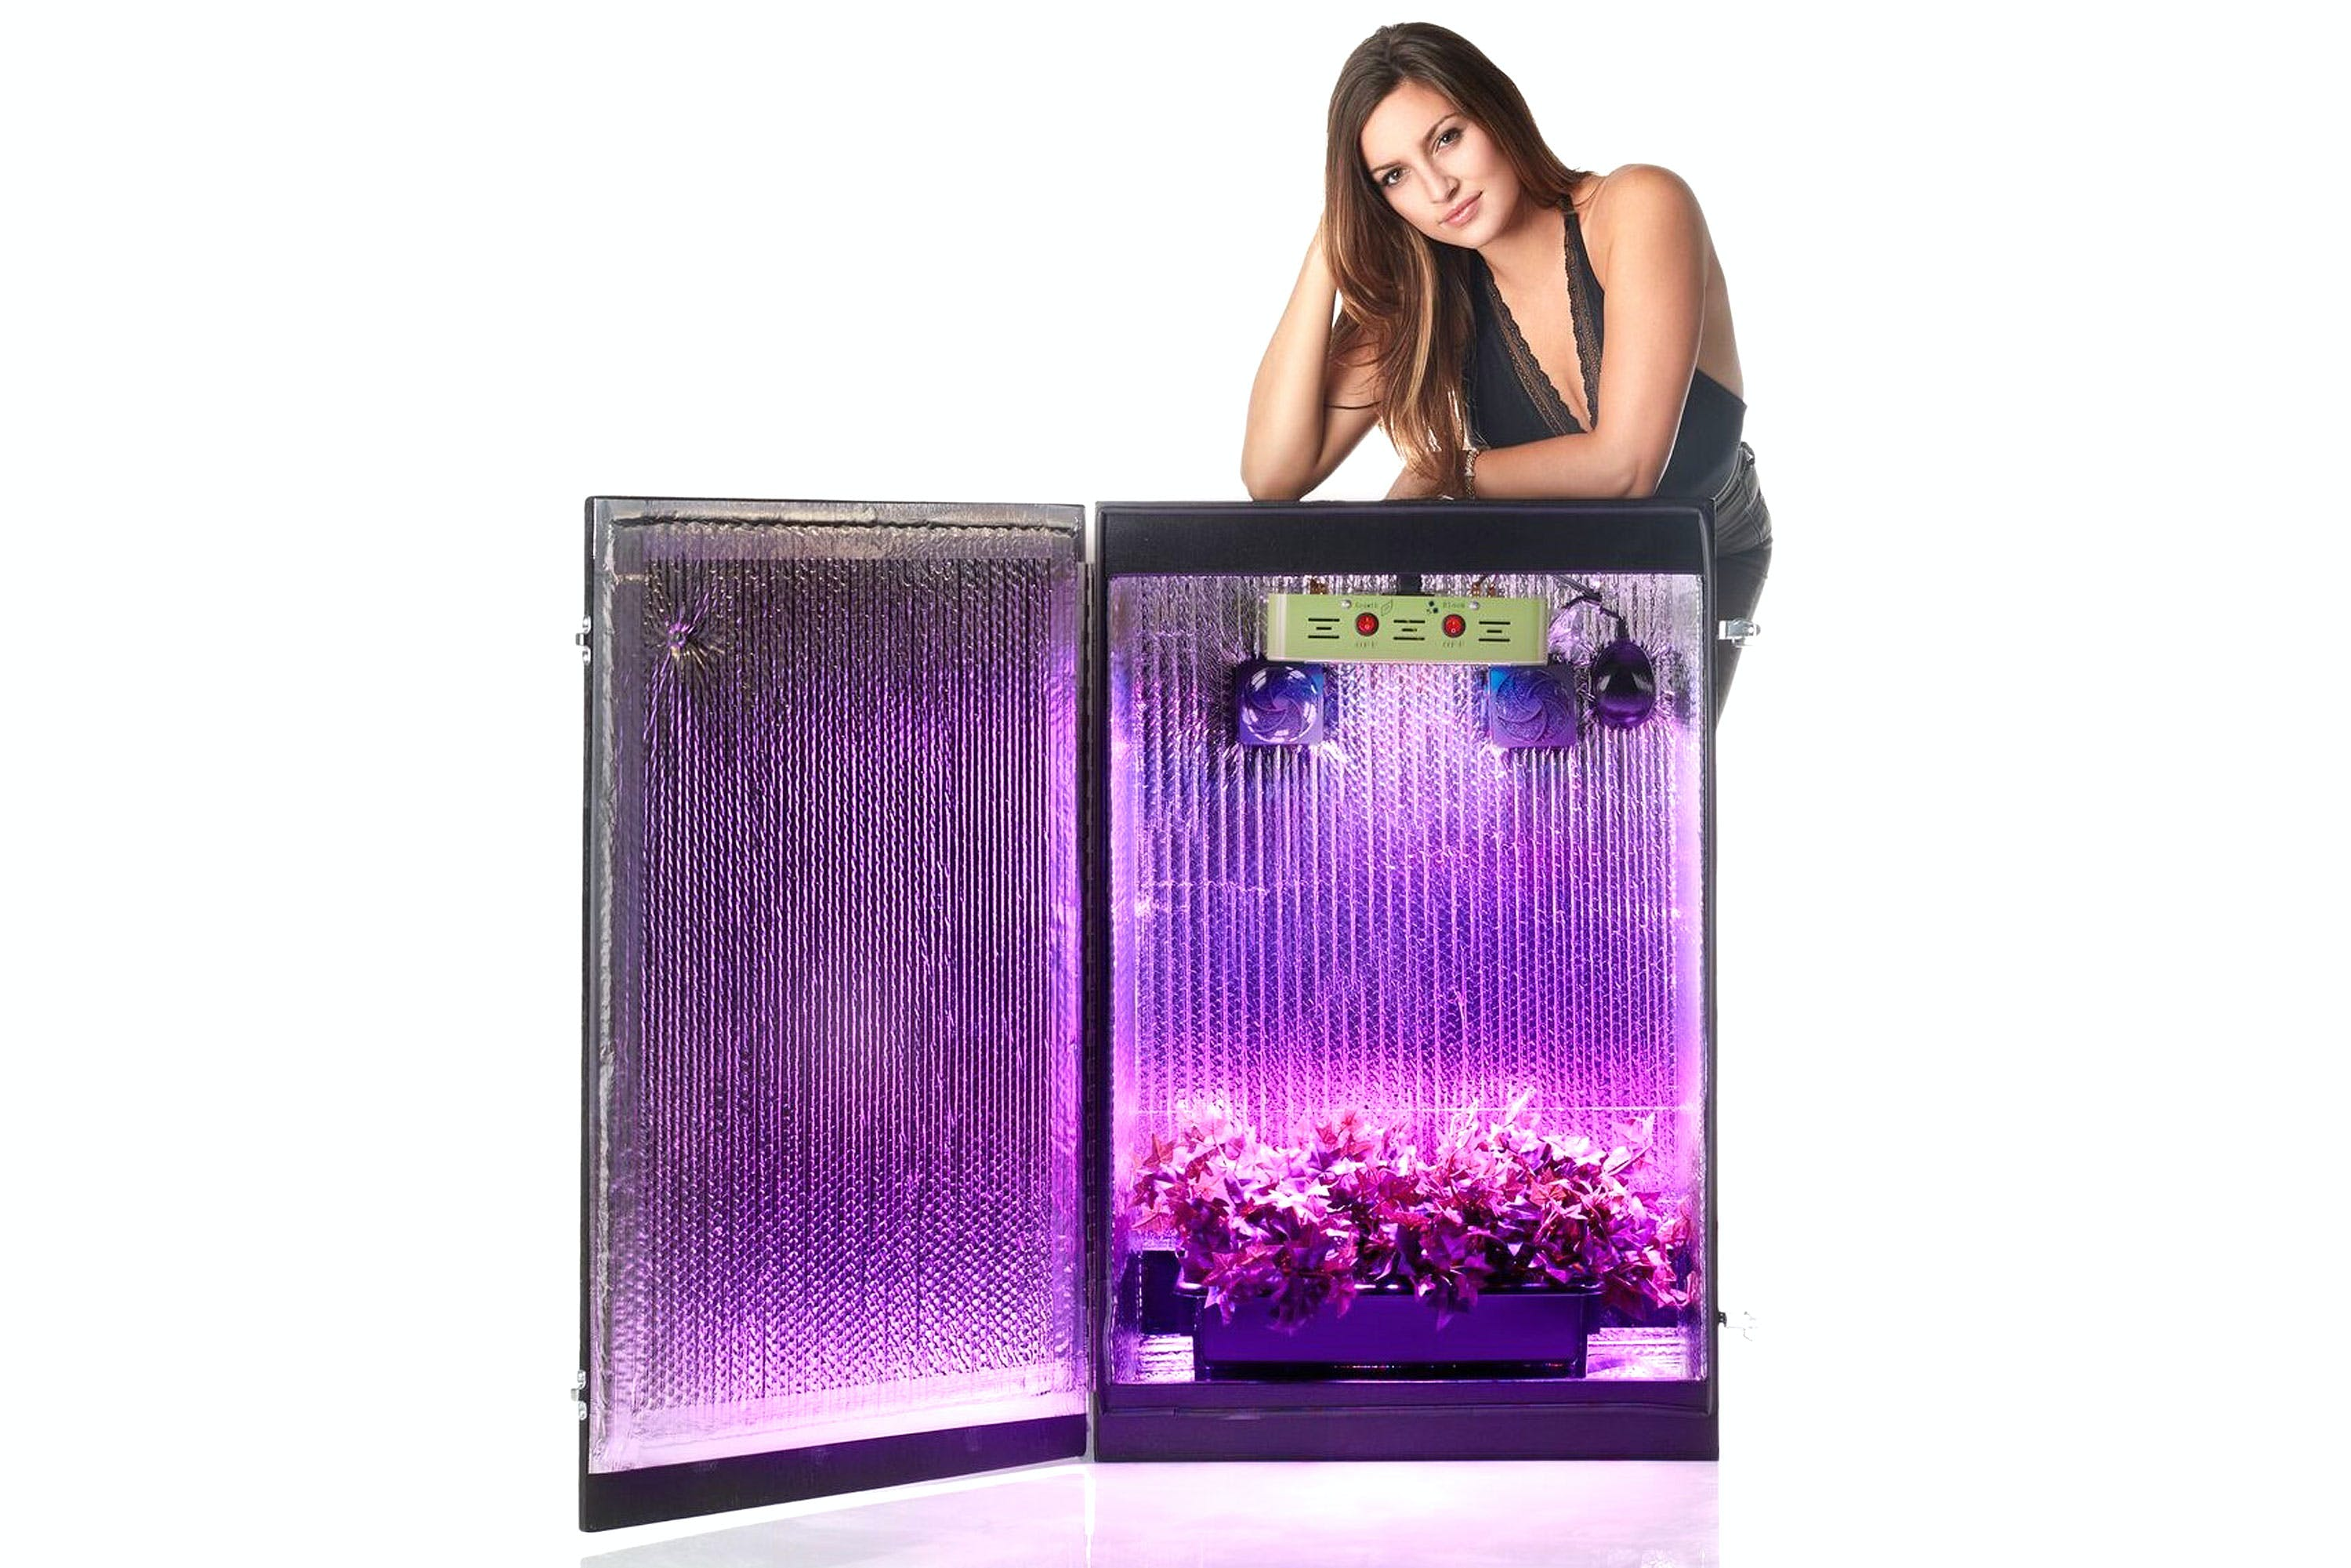 GSG4 Grow Box Grow Weed Effortlessly With The Best Grow Box For Beginners